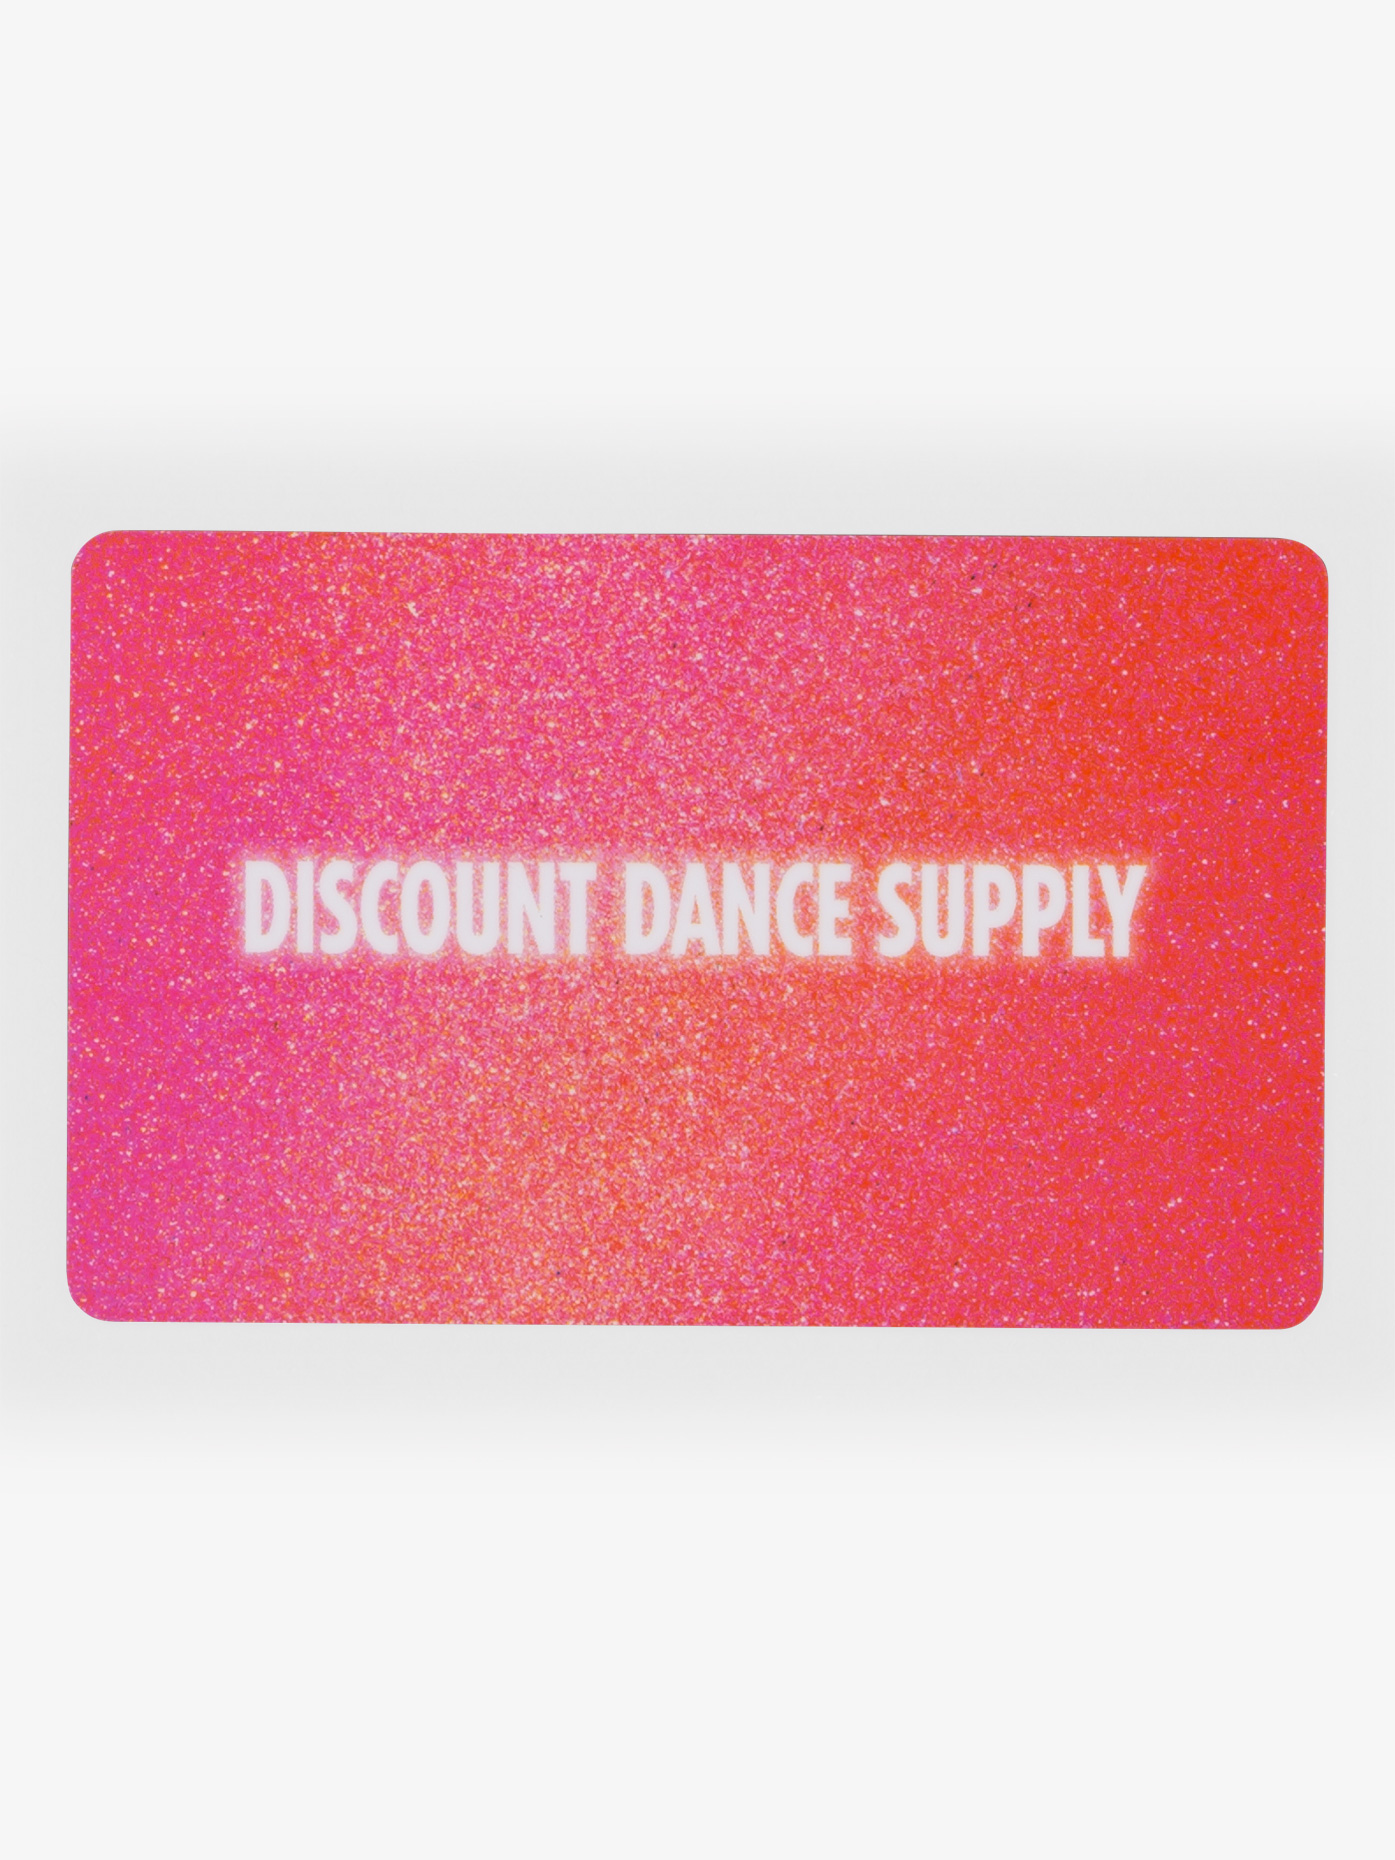 25 Gift Card Discount Dance Supply Gift25 Discountdance